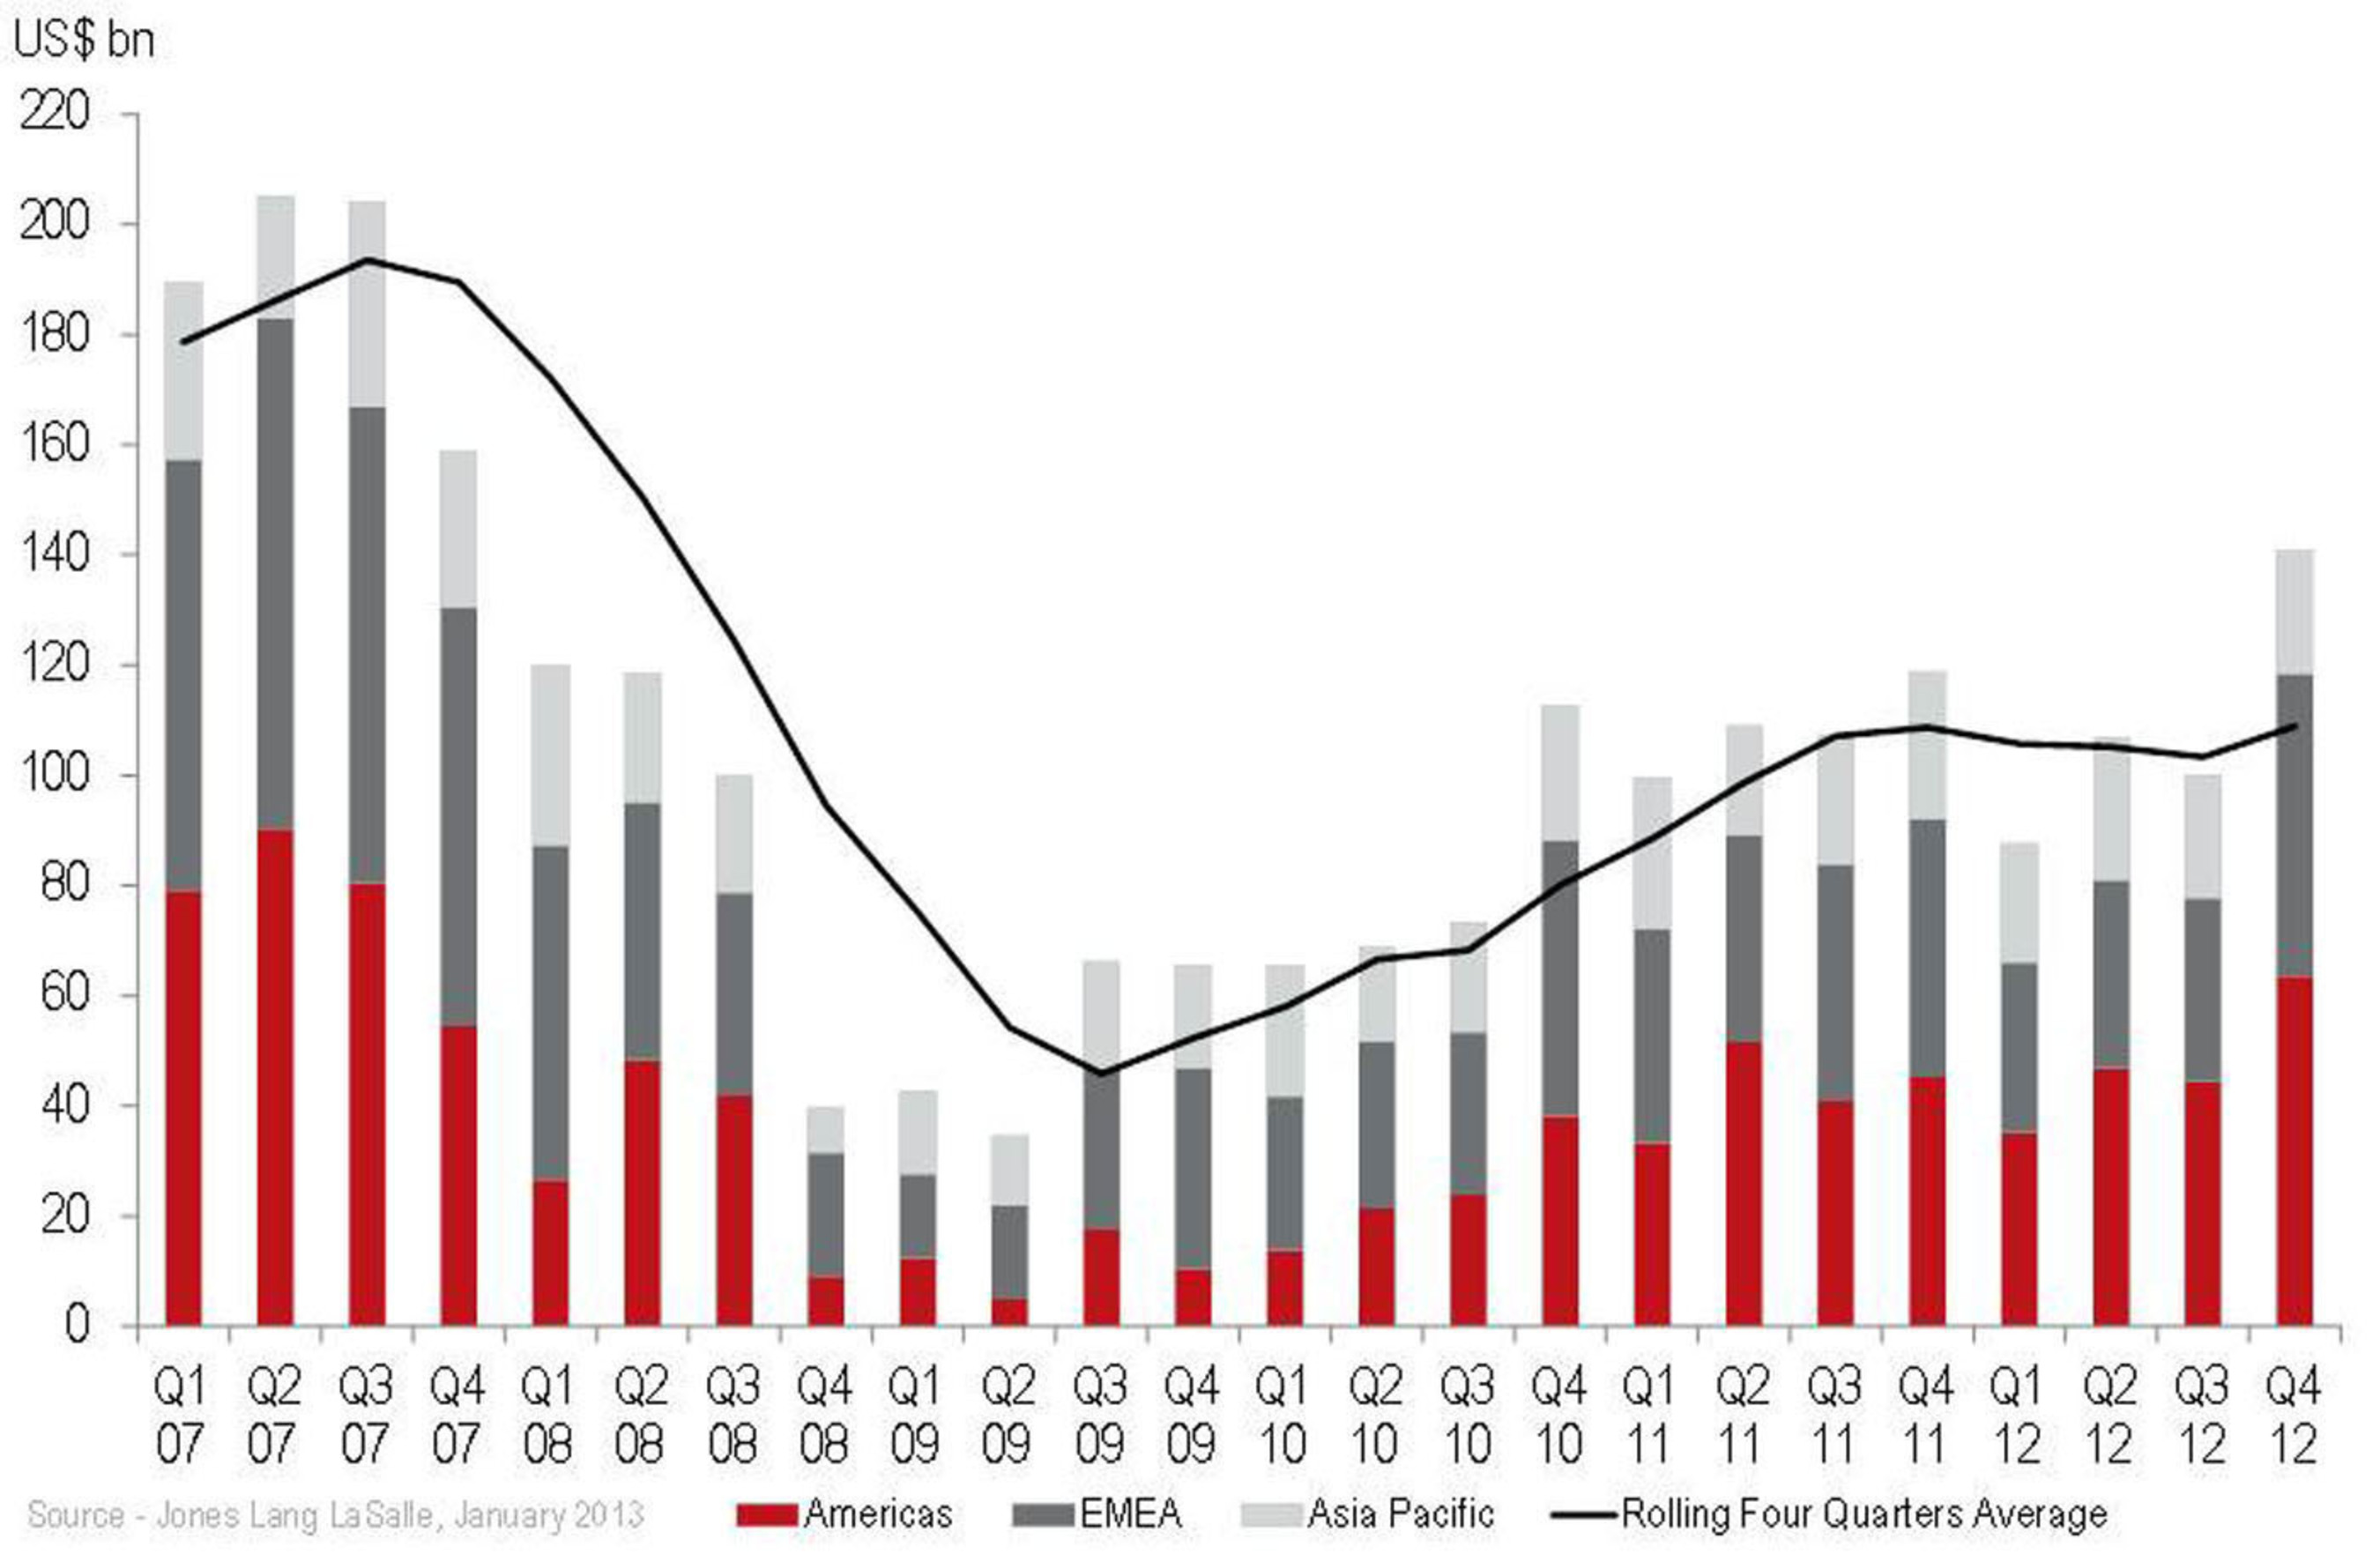 4Q 2012 preliminary global commercial real estate investment volumes.  (PRNewsFoto/Jones Lang LaSalle)